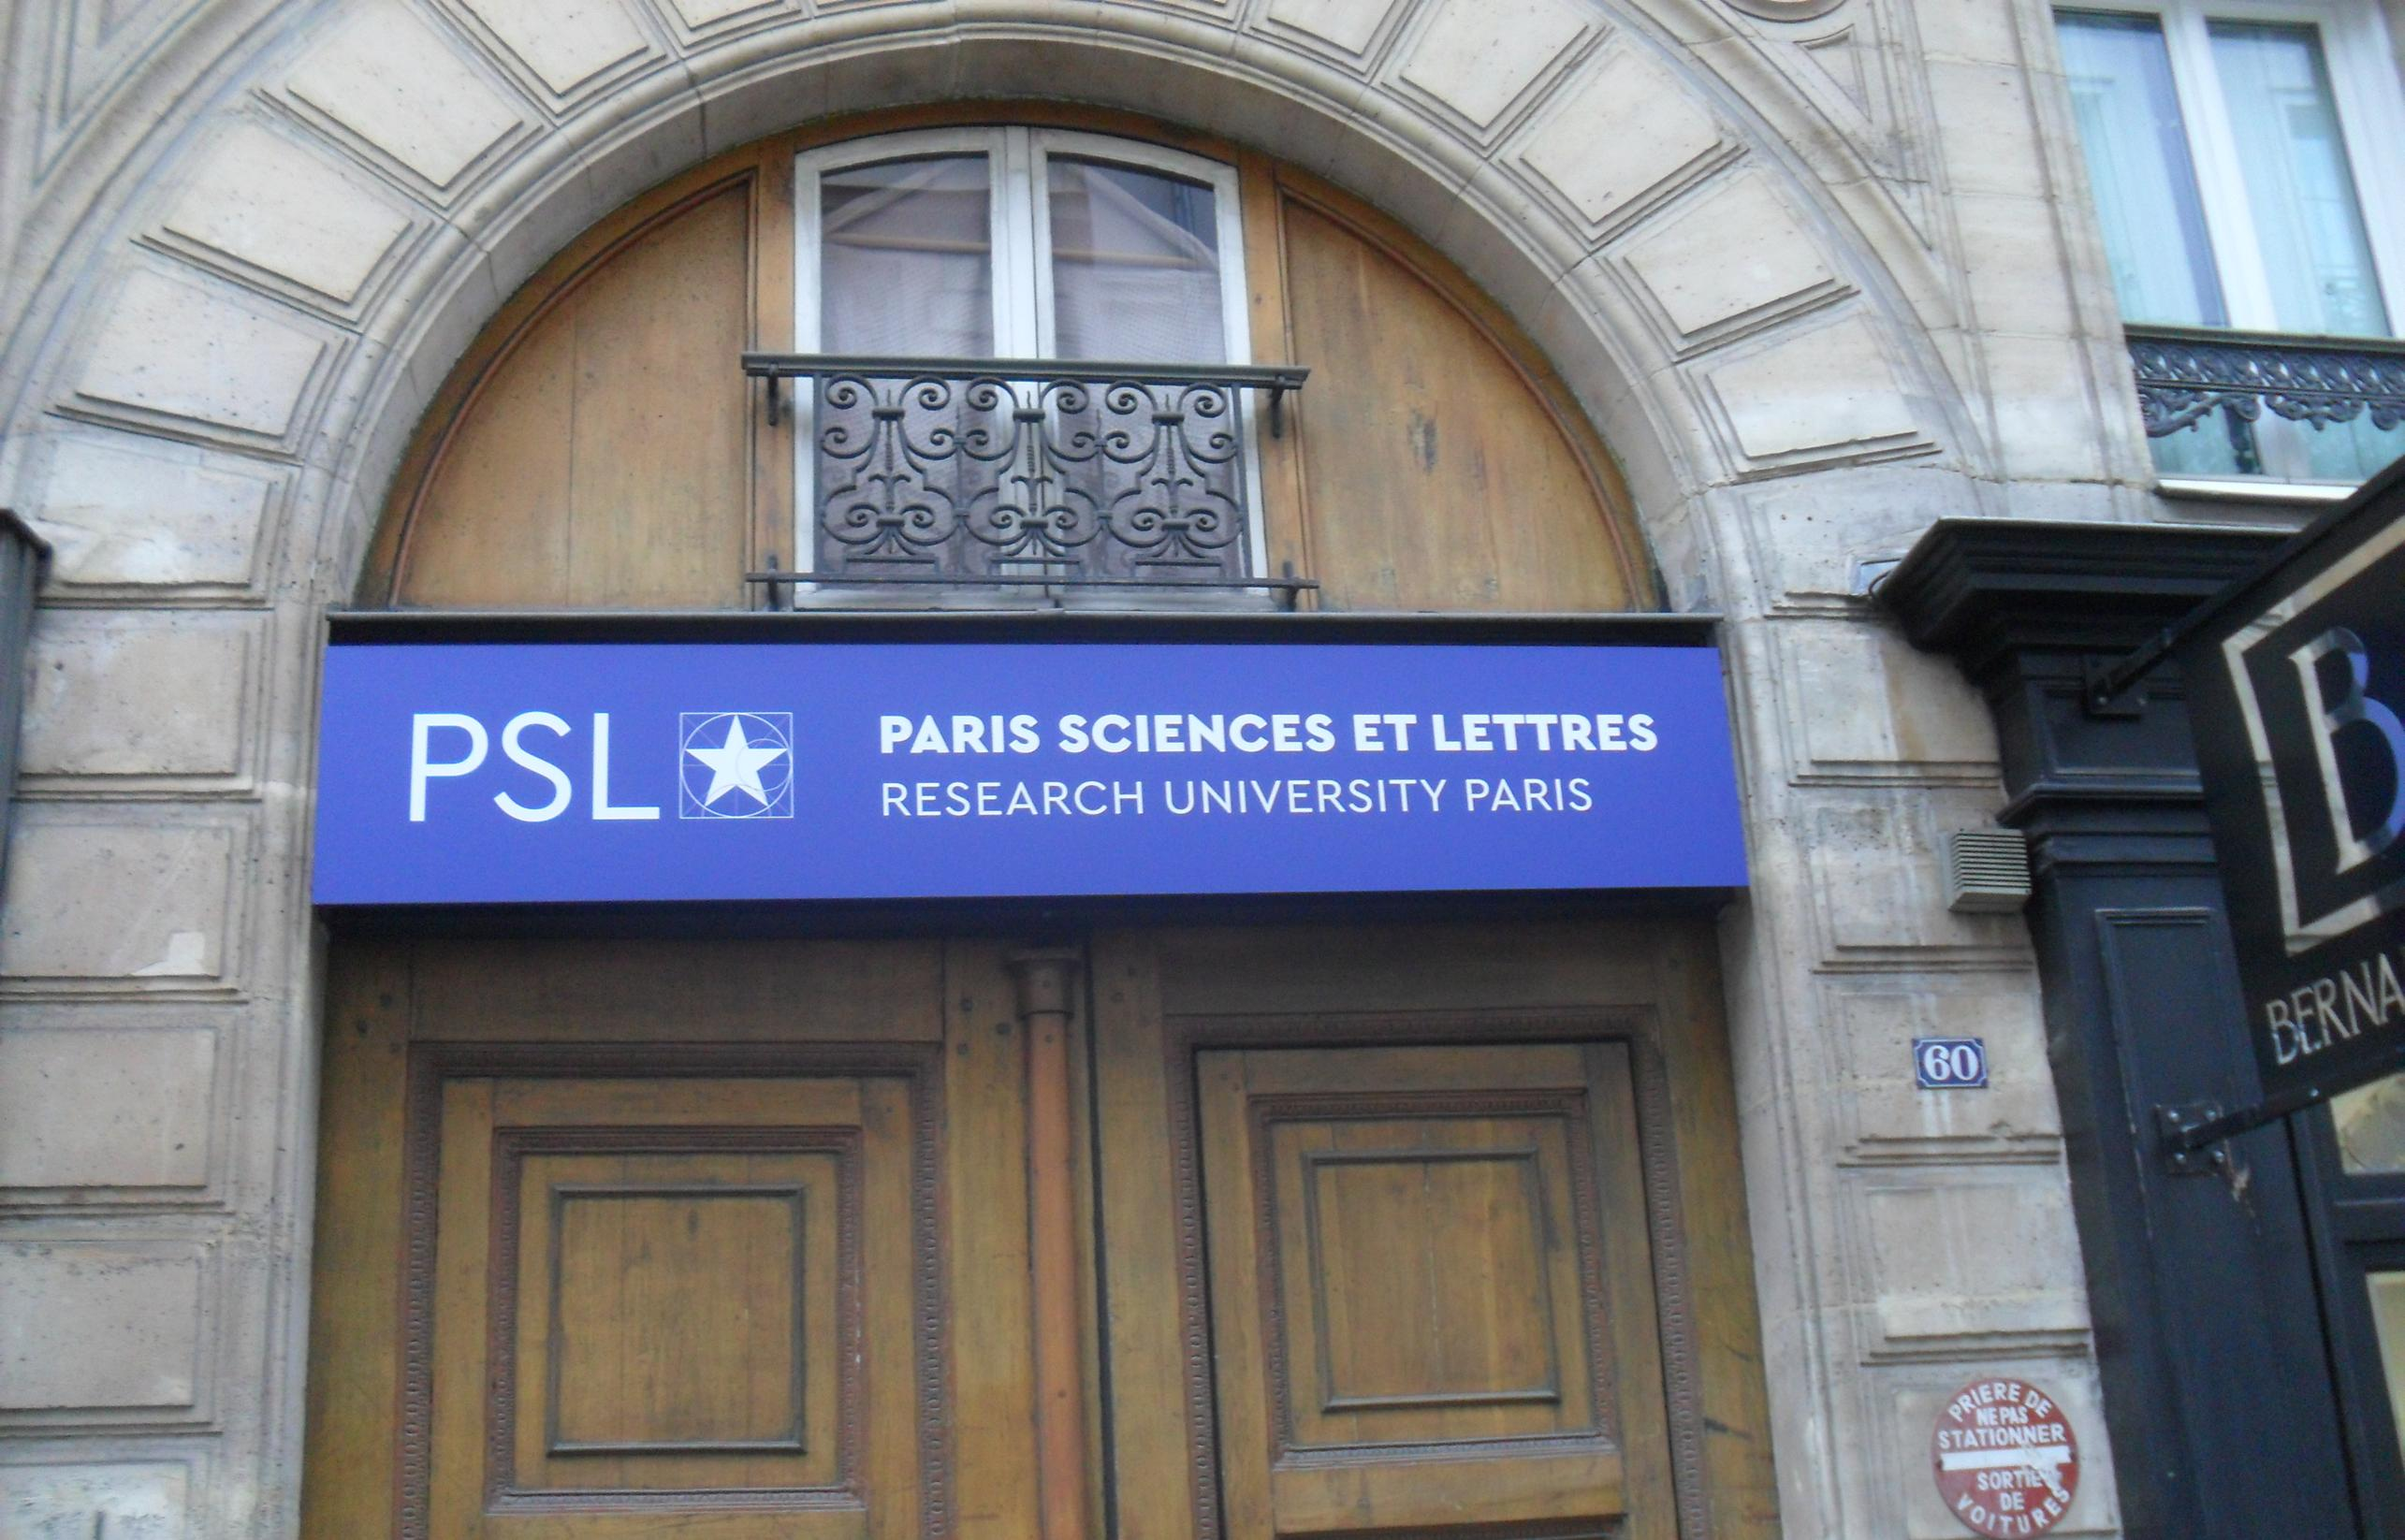 PSL Paris Sciences et Lettres et son logotype